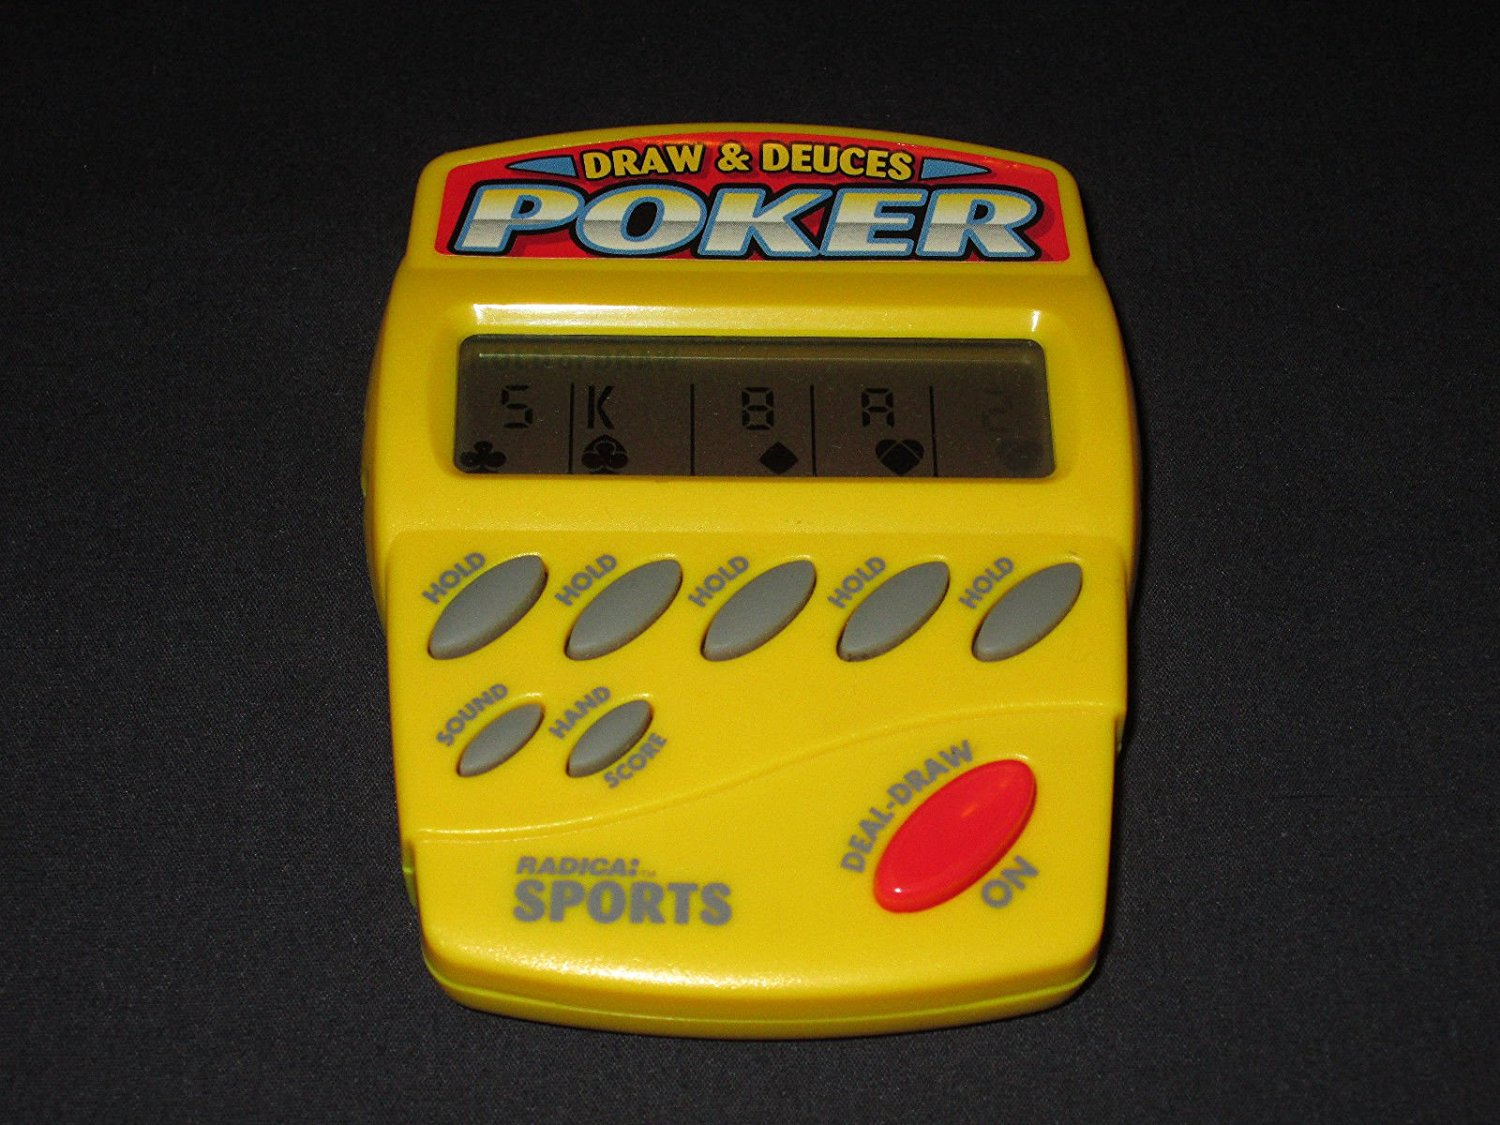 Wingsmarketshop Radica Draw and Deuces Poker Electronic Hand-Held Game - TESTED + WORKING!